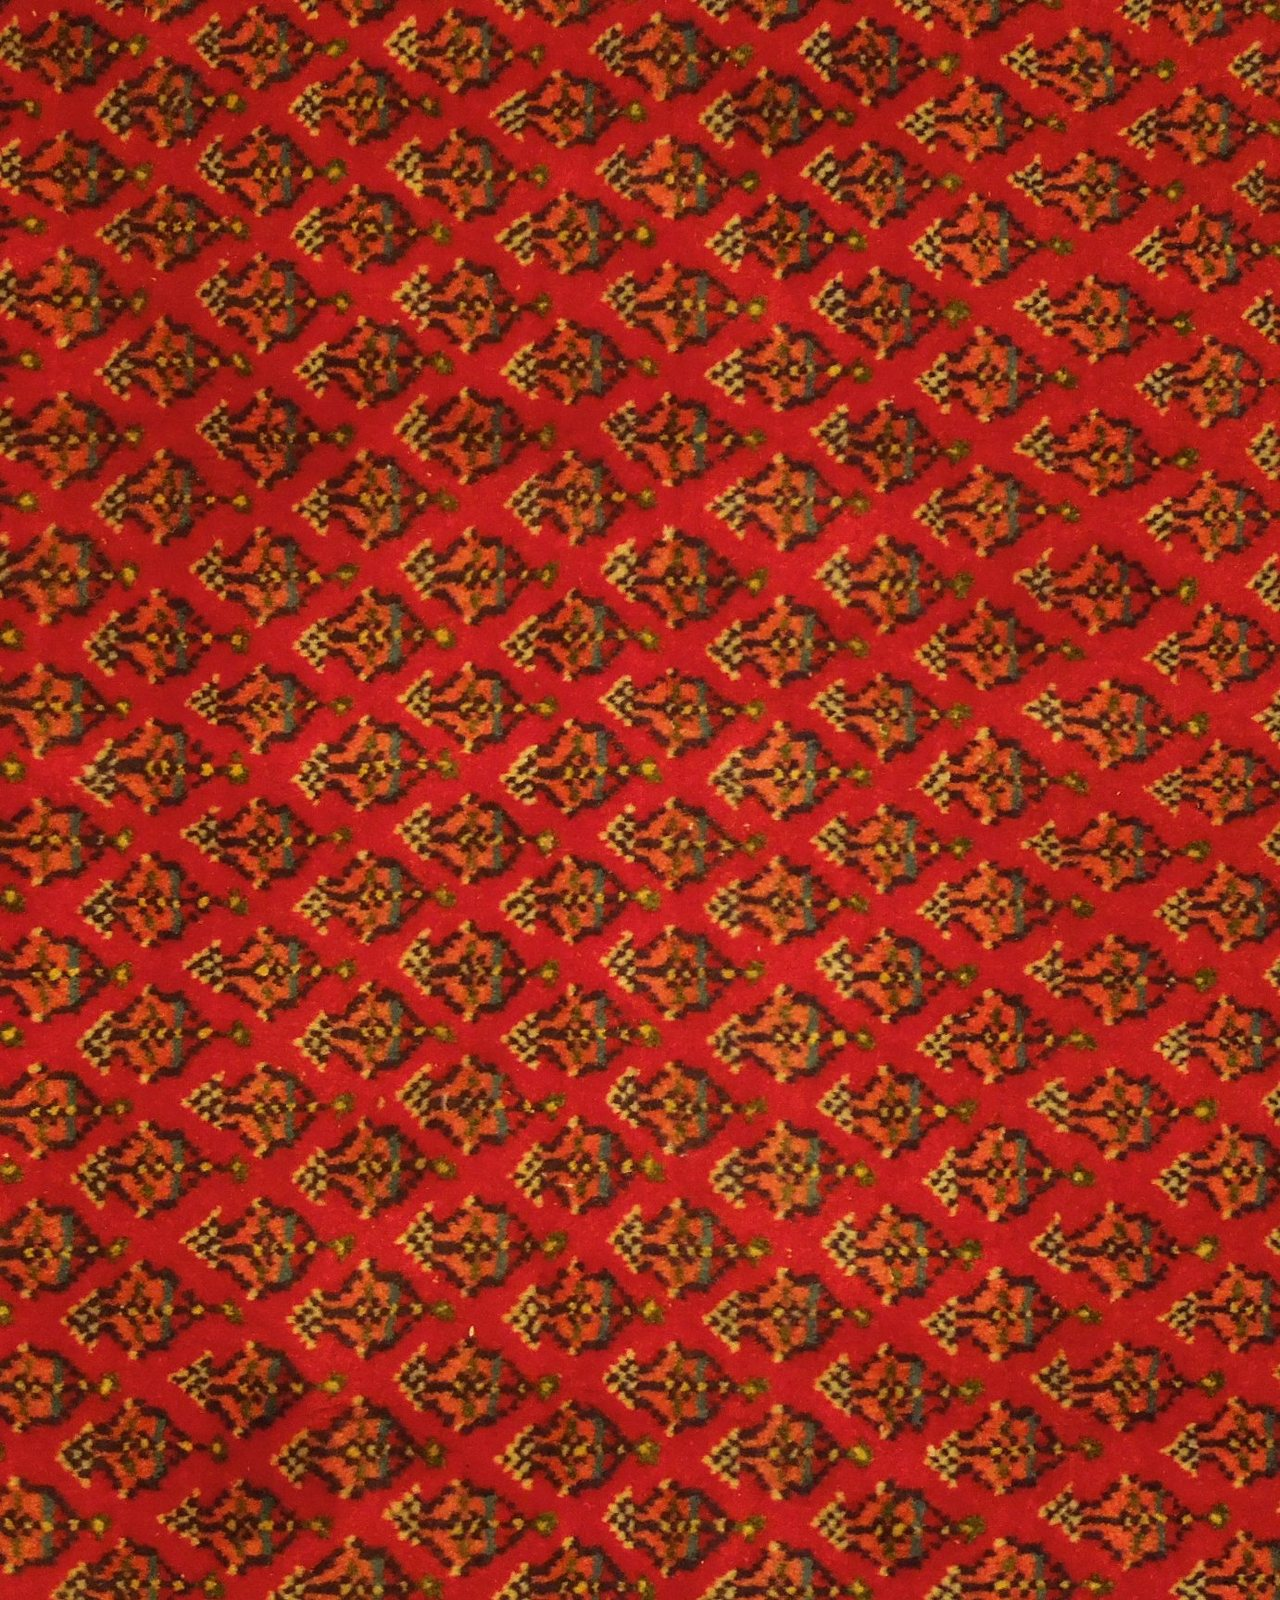 Vivid Boteh Flamed All-Over Persian Hand-Knotted 7x10 Red Mir Wool Area Rug image 11